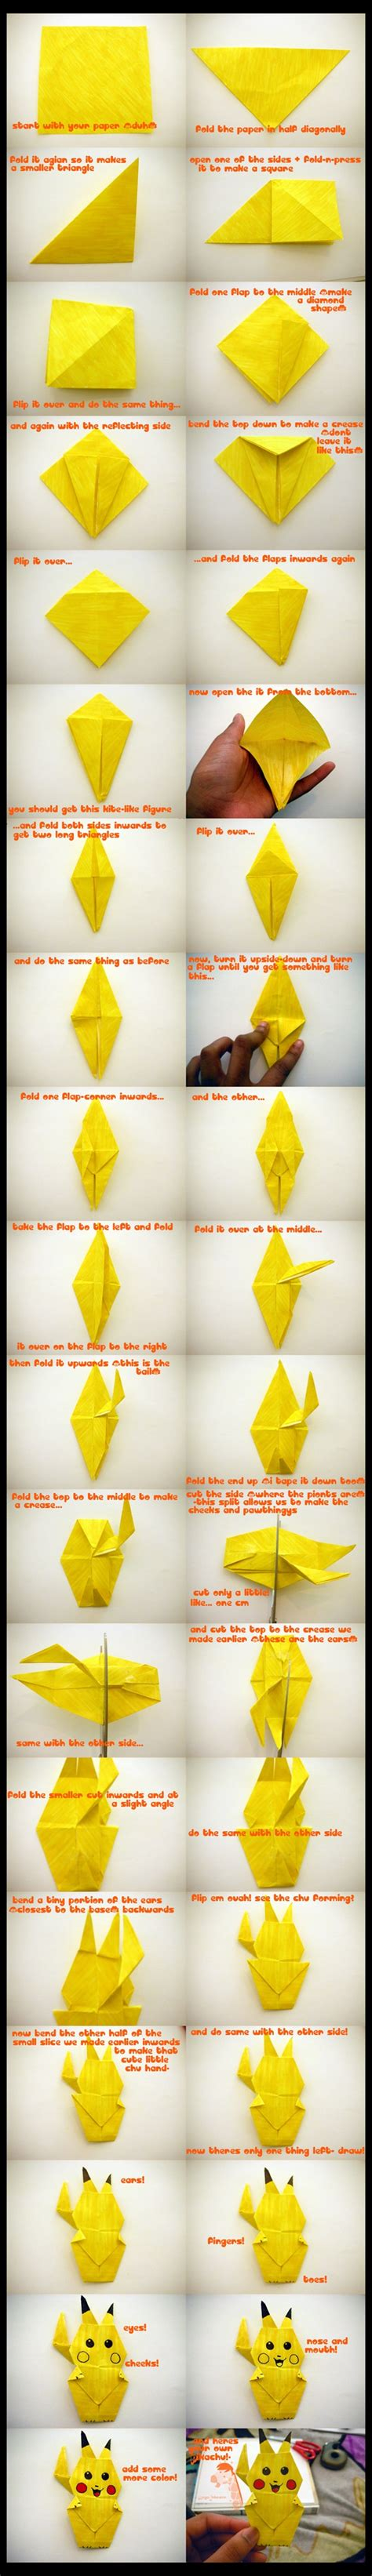 Origami Pokemons - how to make an origami pikachu bit rebels